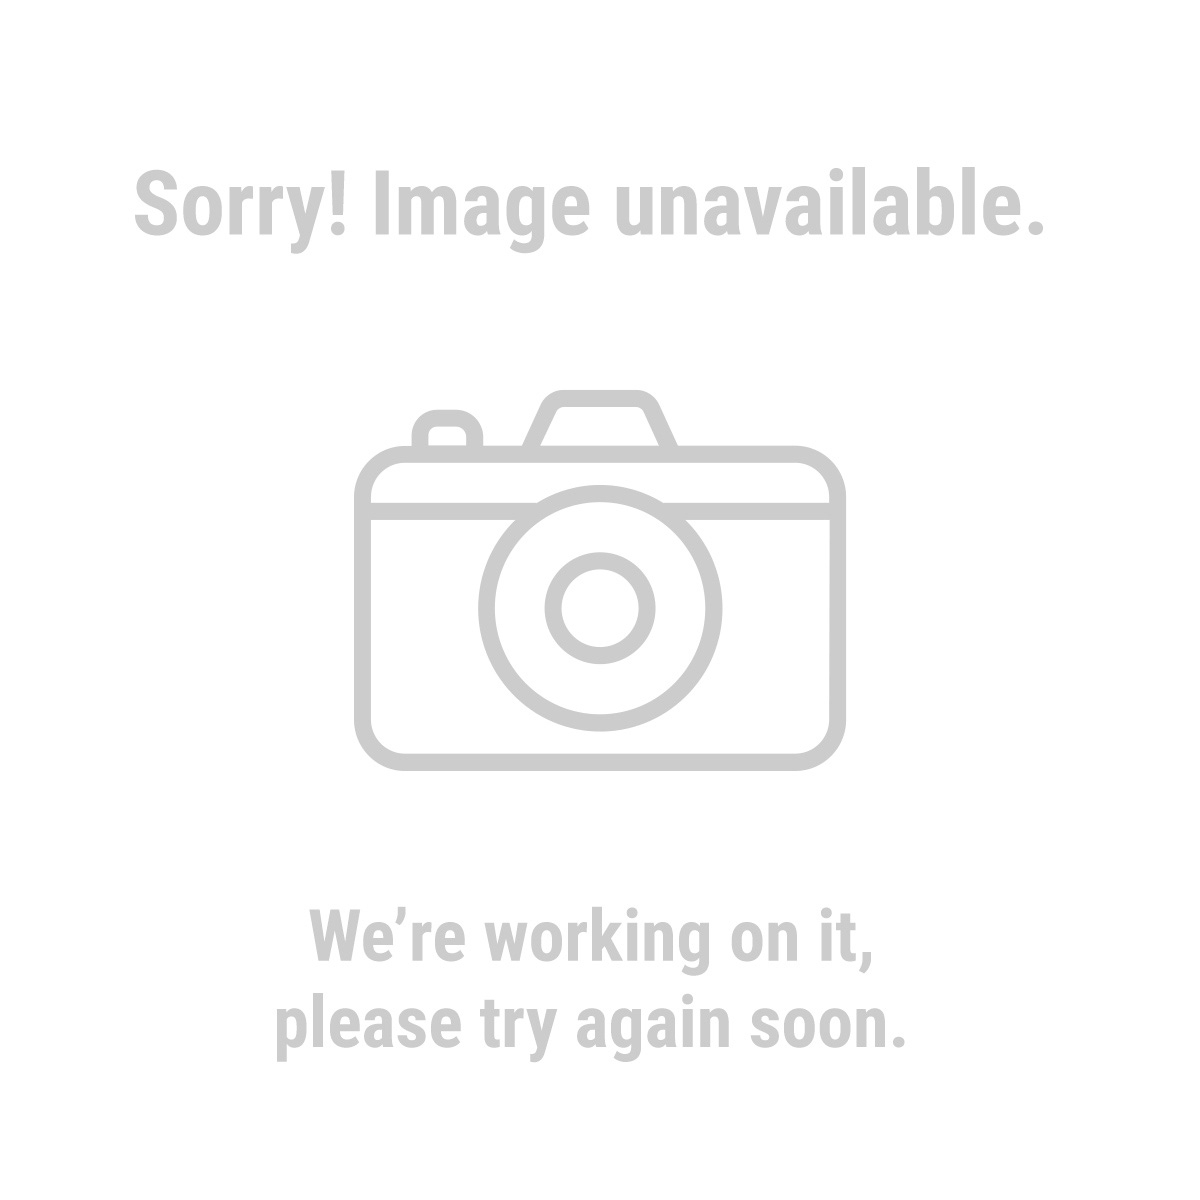 Image result for Metal Cutting Bandsaw